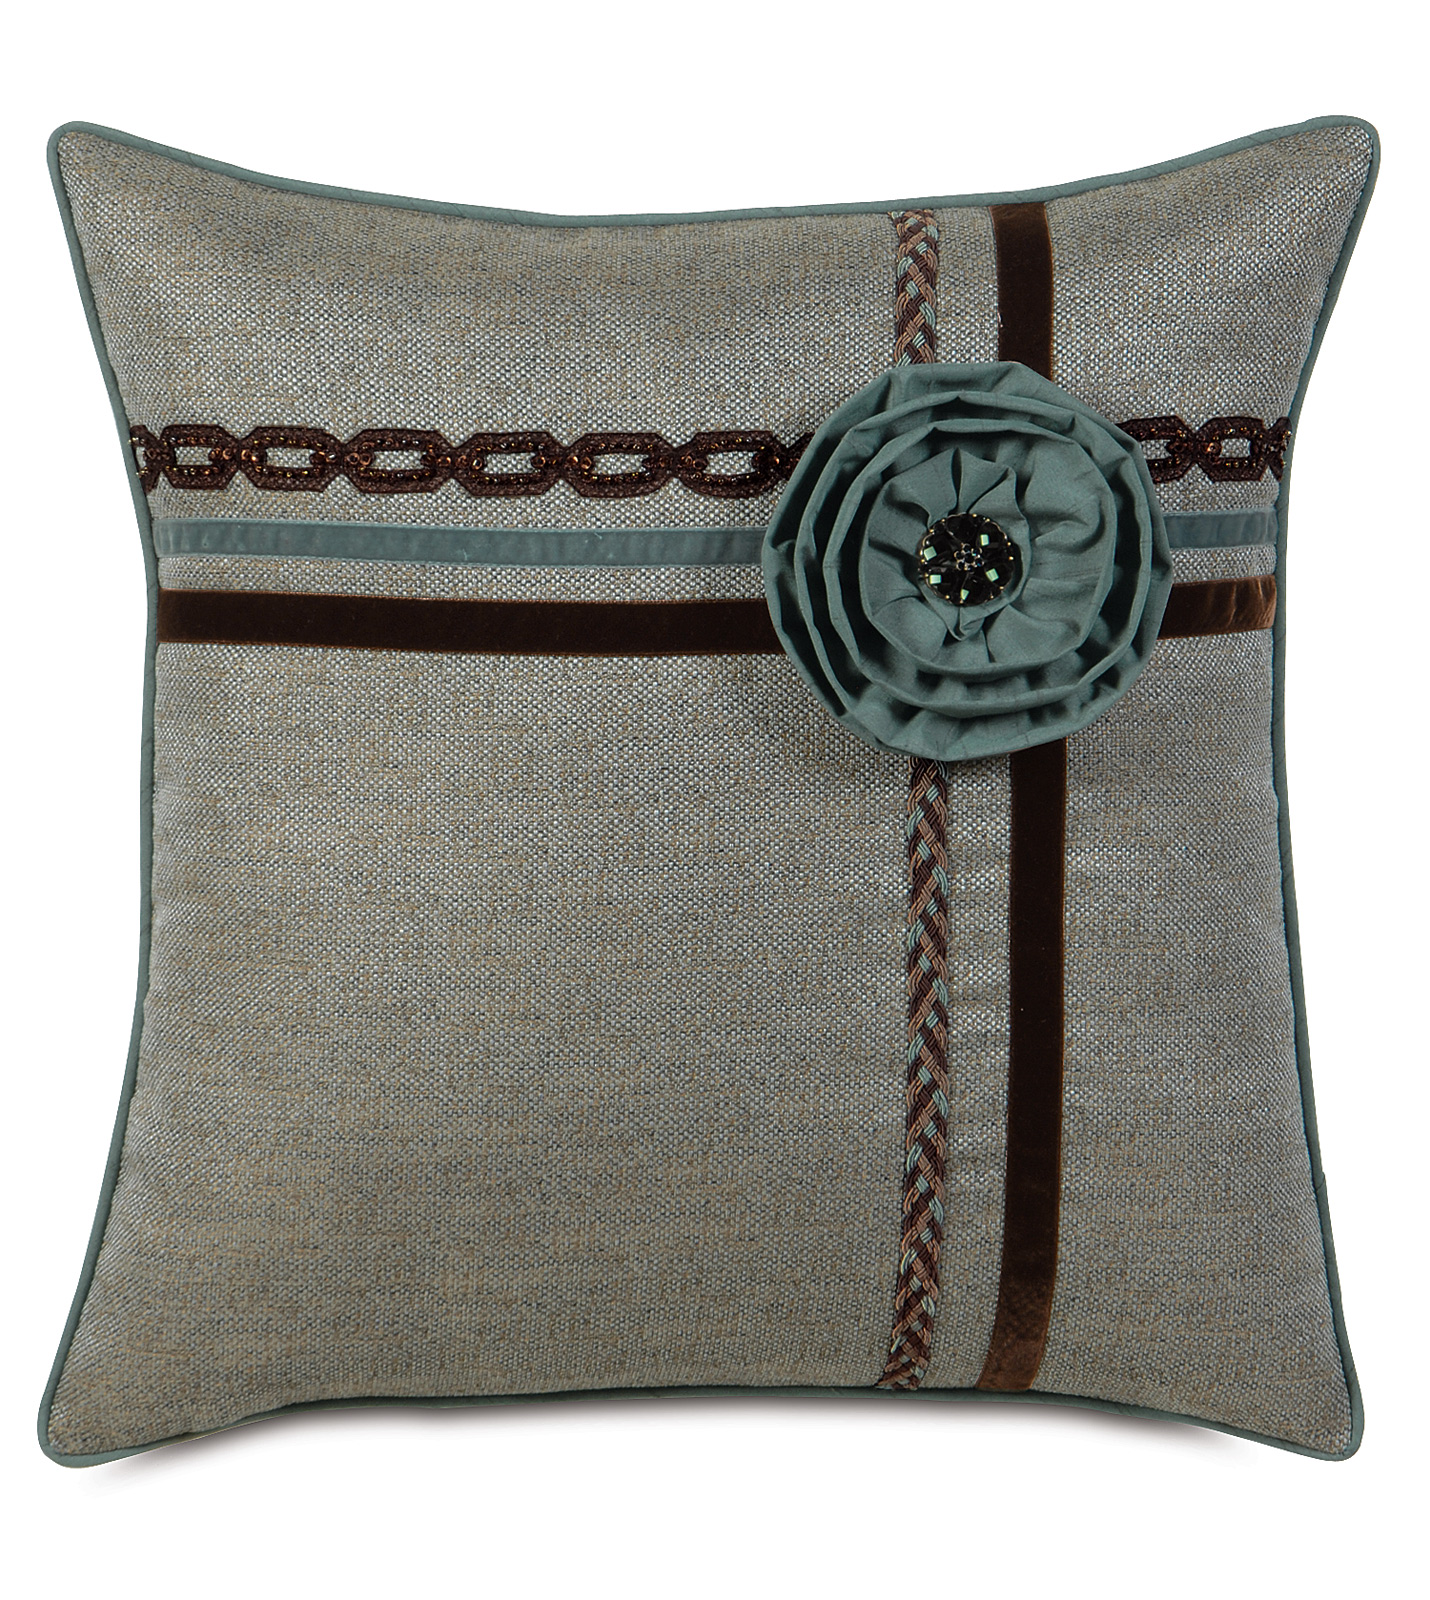 finna kuddar on Pinterest Throw Pillow Covers, Pillows and Luxury Bedding